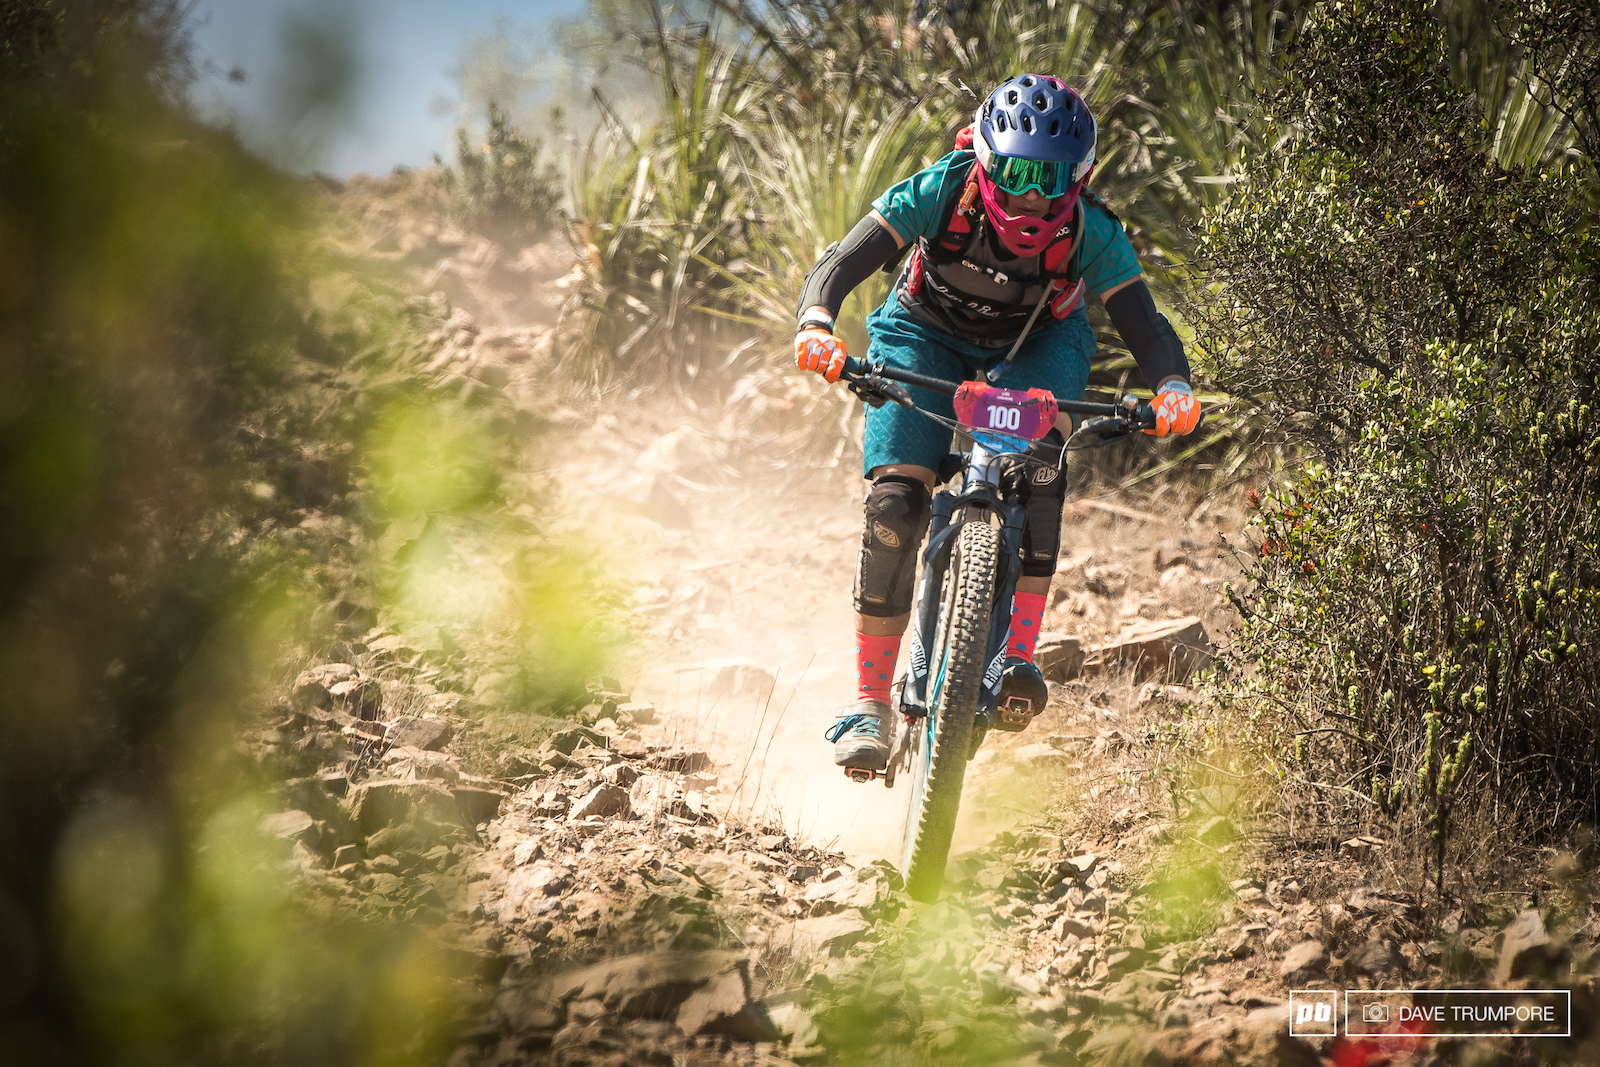 Leigh Bowe came from Colorado to race the Andes Pacifico for the first time and would finish a hard fought 5th.